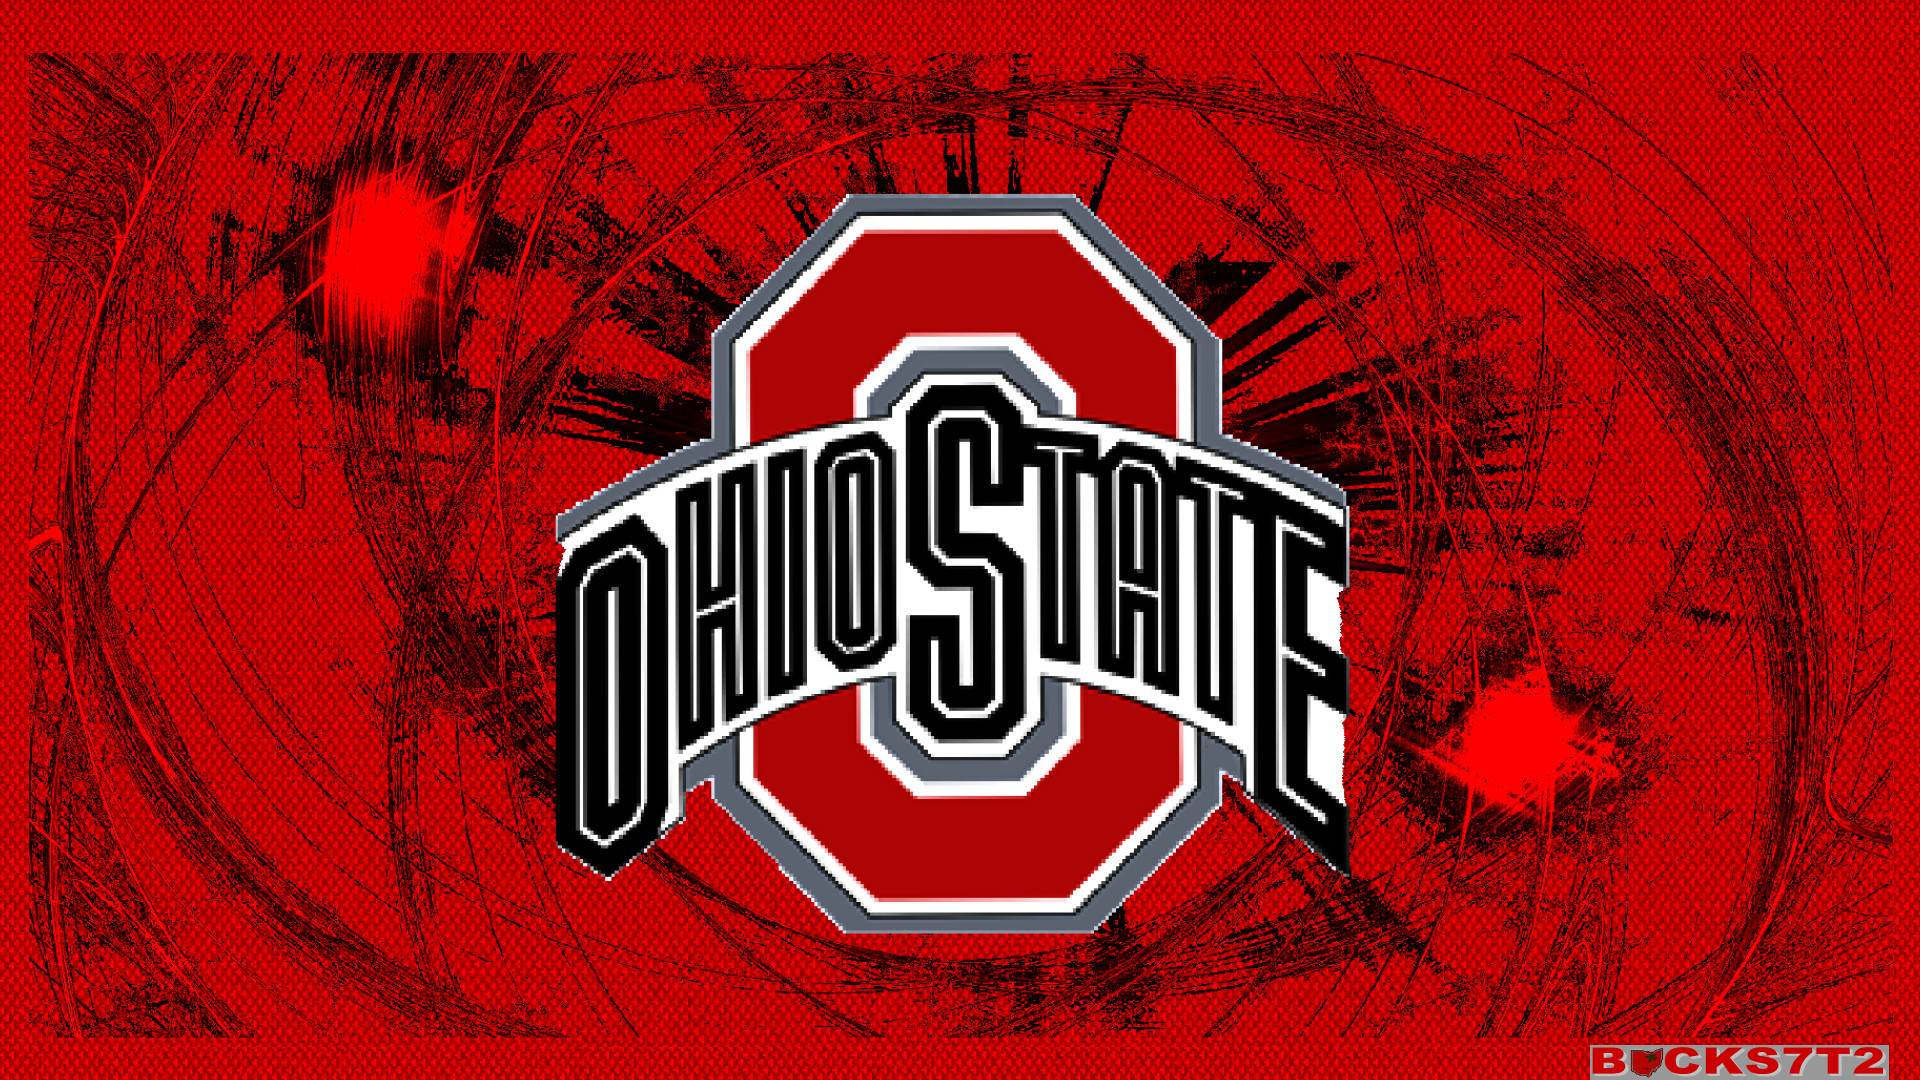 1920x1080  Ohio State Buckeyes images RED BLOCK O OHIO STATE HD wallpaper  and background photos